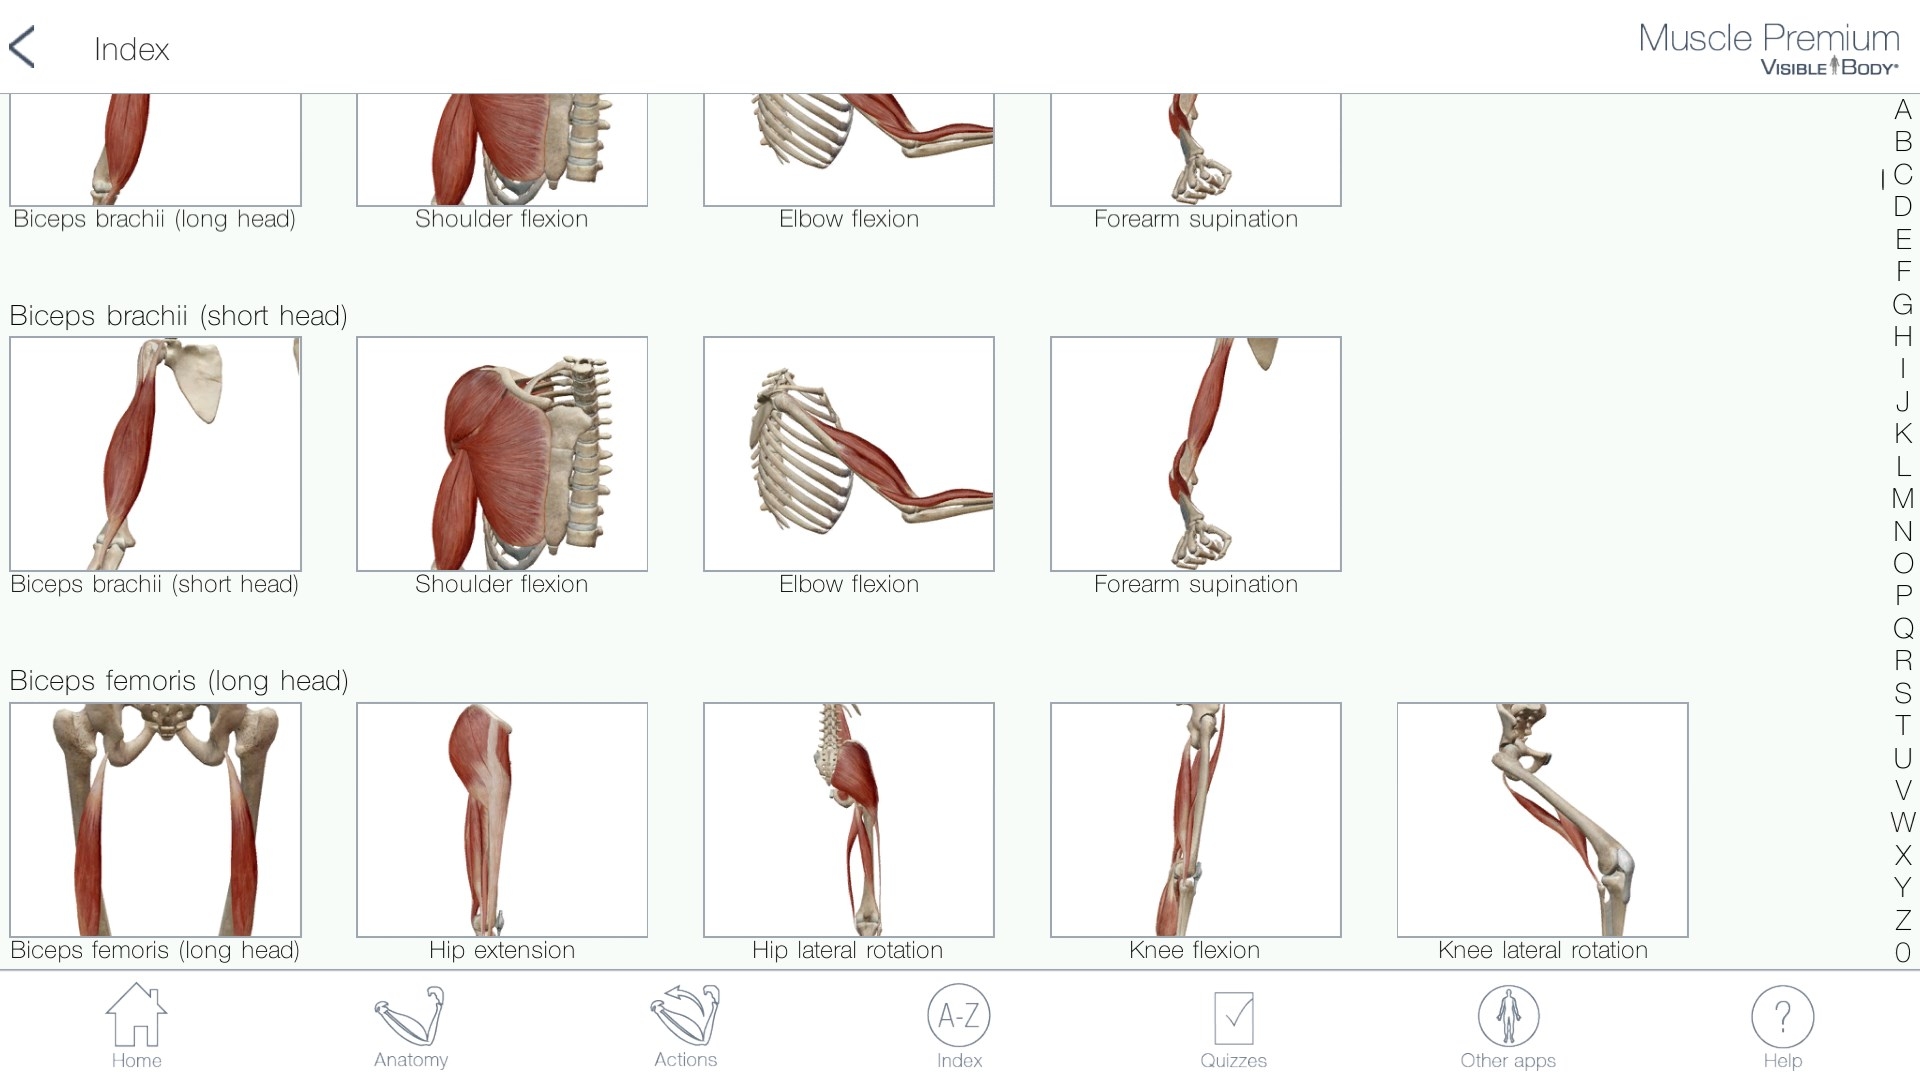 Muscle Premium: 3D Visual Guide for Bones, Joints & Muscles — Human ...